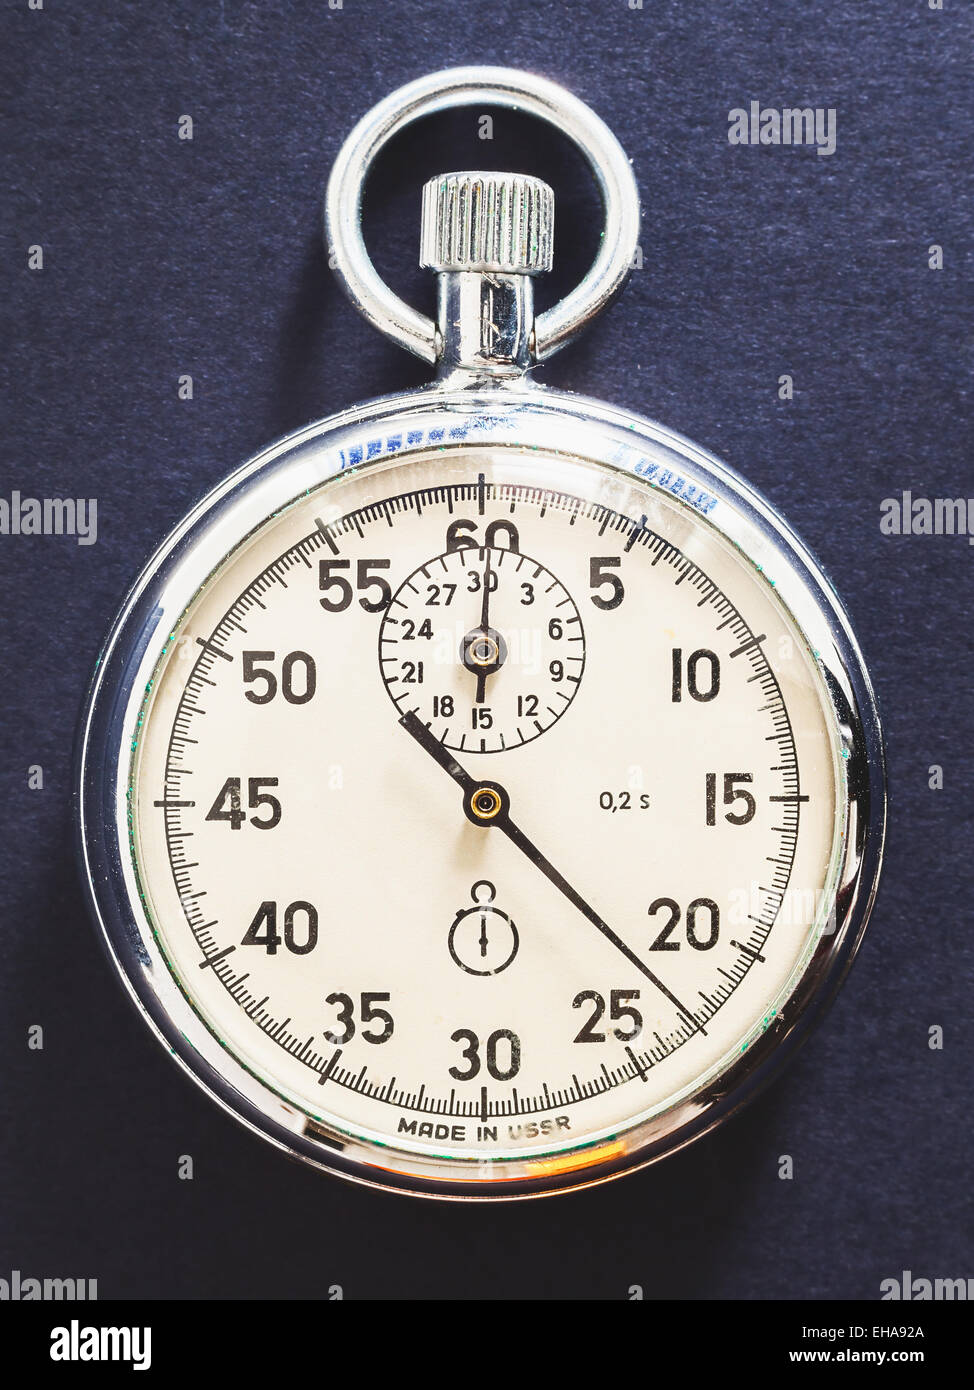 Details of an old, retro style, Russian stopwatch. - Stock Image